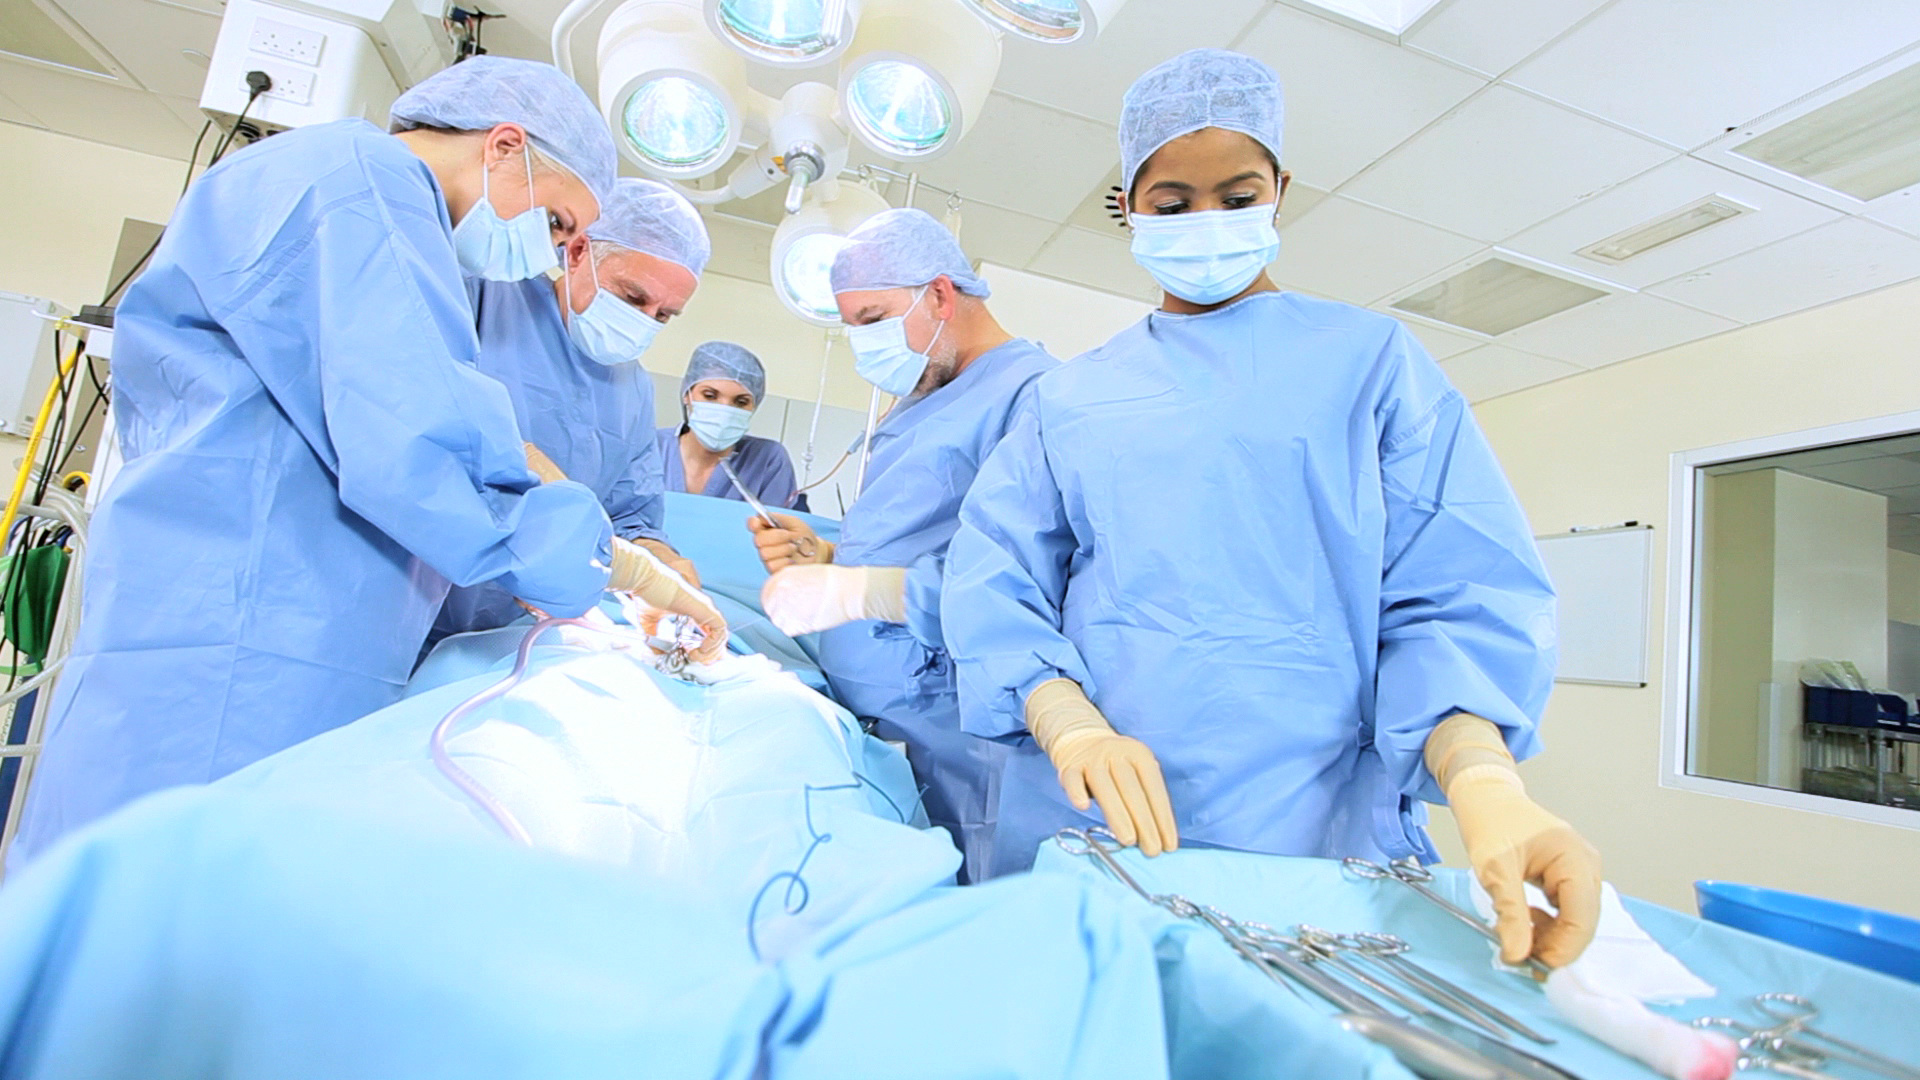 Reducing Infection and Costs for the Medical Operation